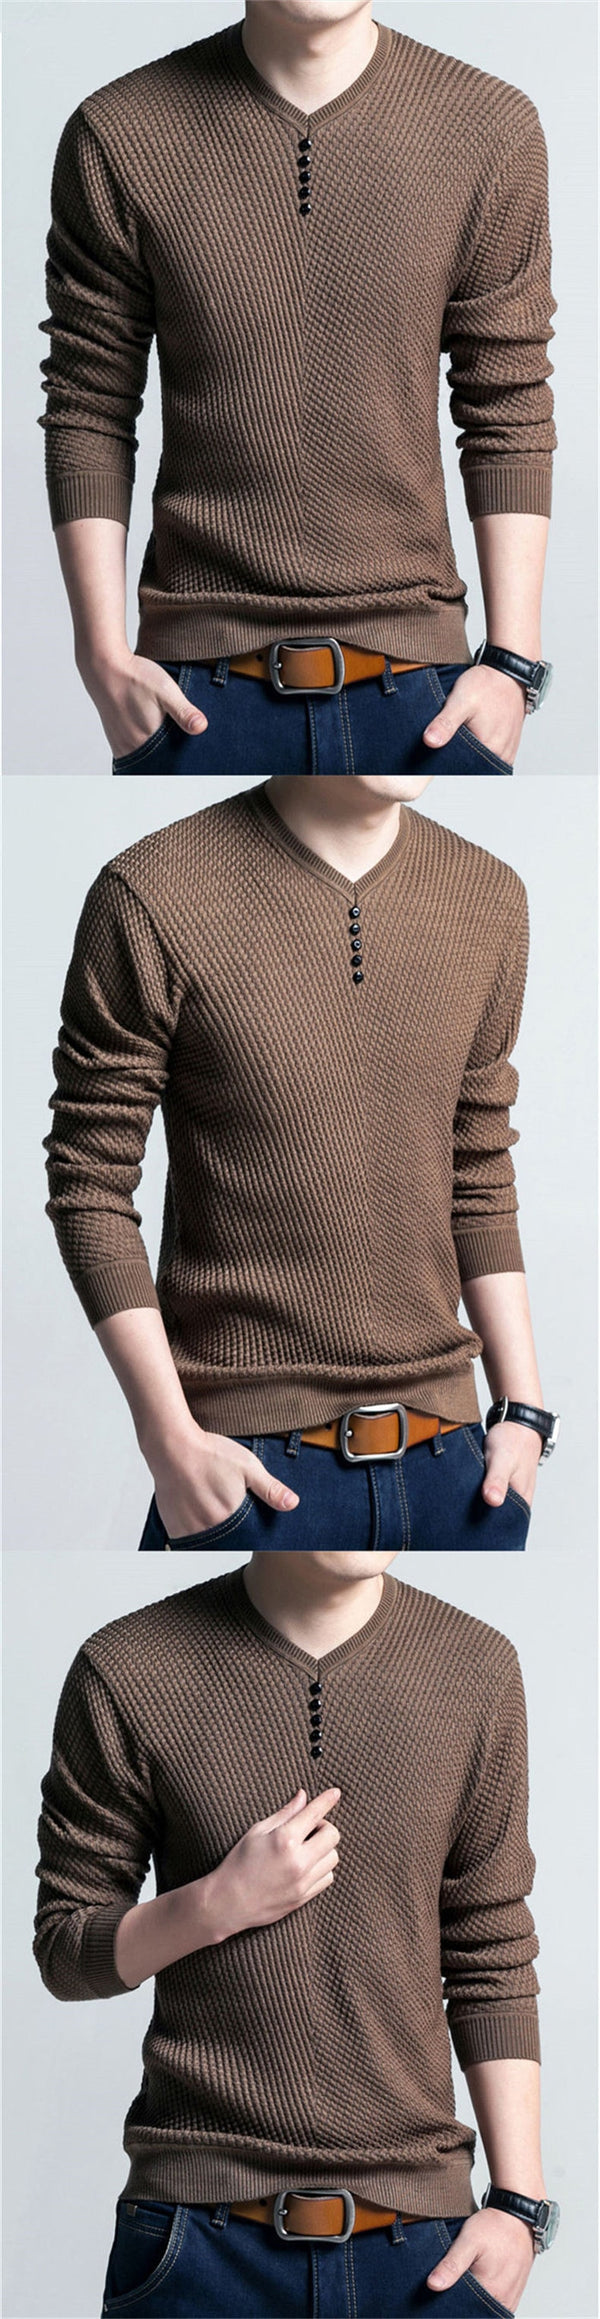 CASUAL V-NECK MEN SWEATER